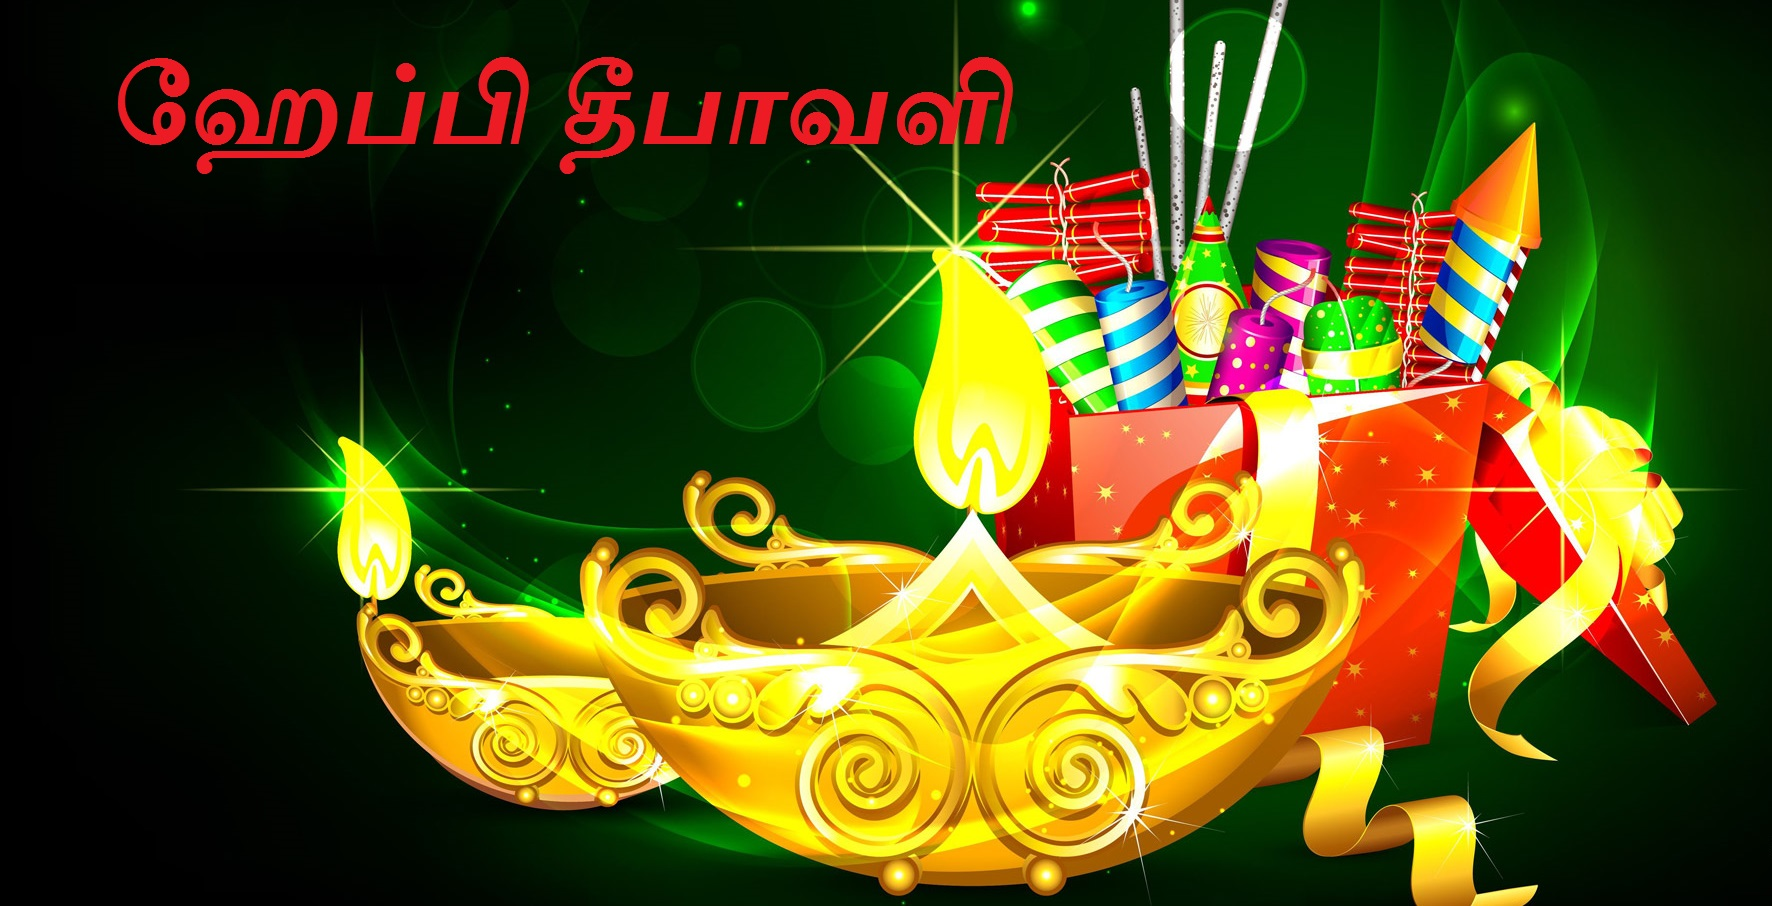 Happy Diwali Messages For Friends Diwali Text Messages In Hindienglish